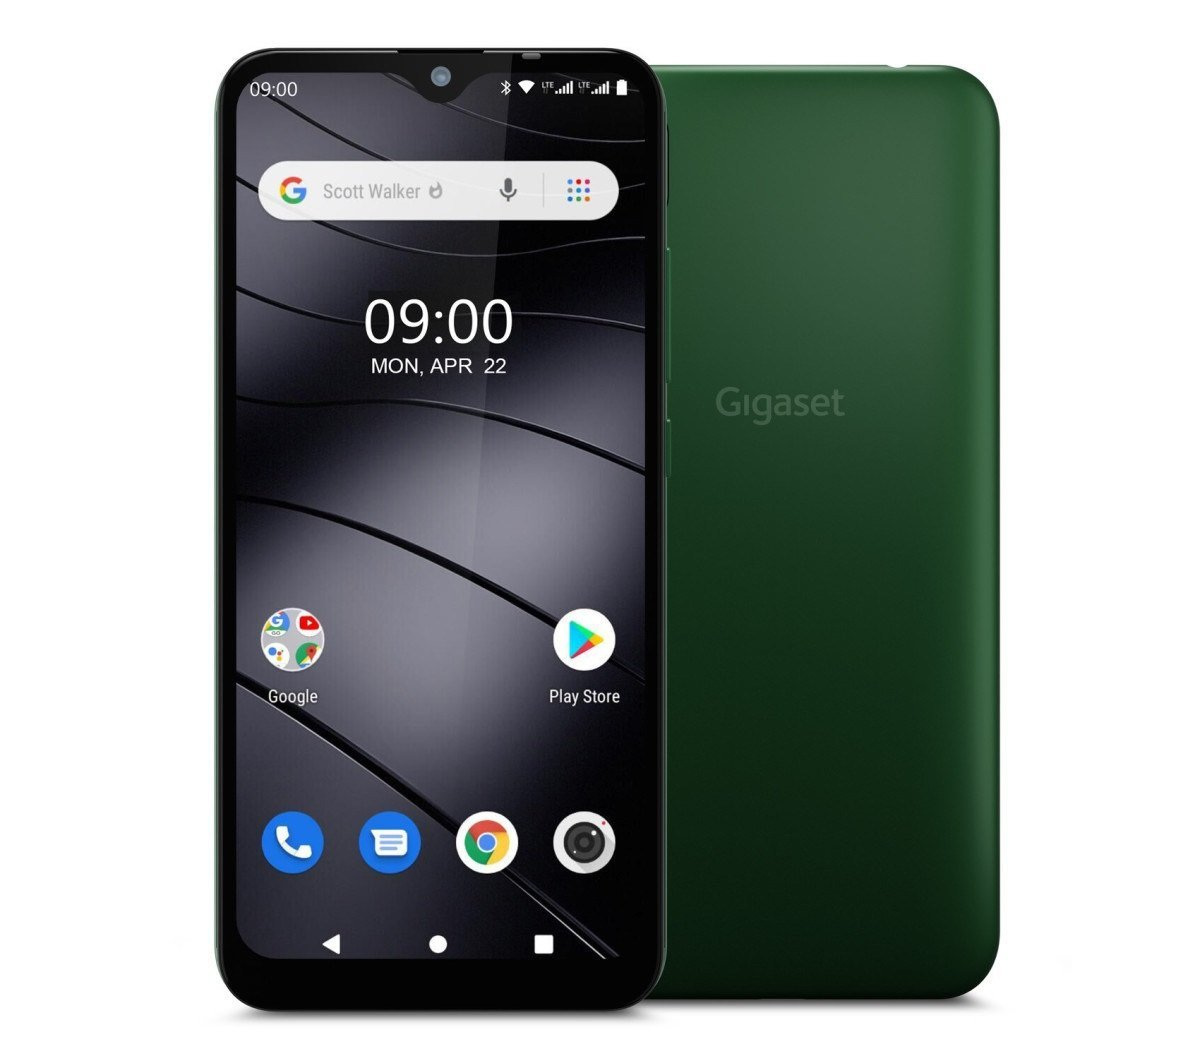 Gigaset GS110 Specifications features and price